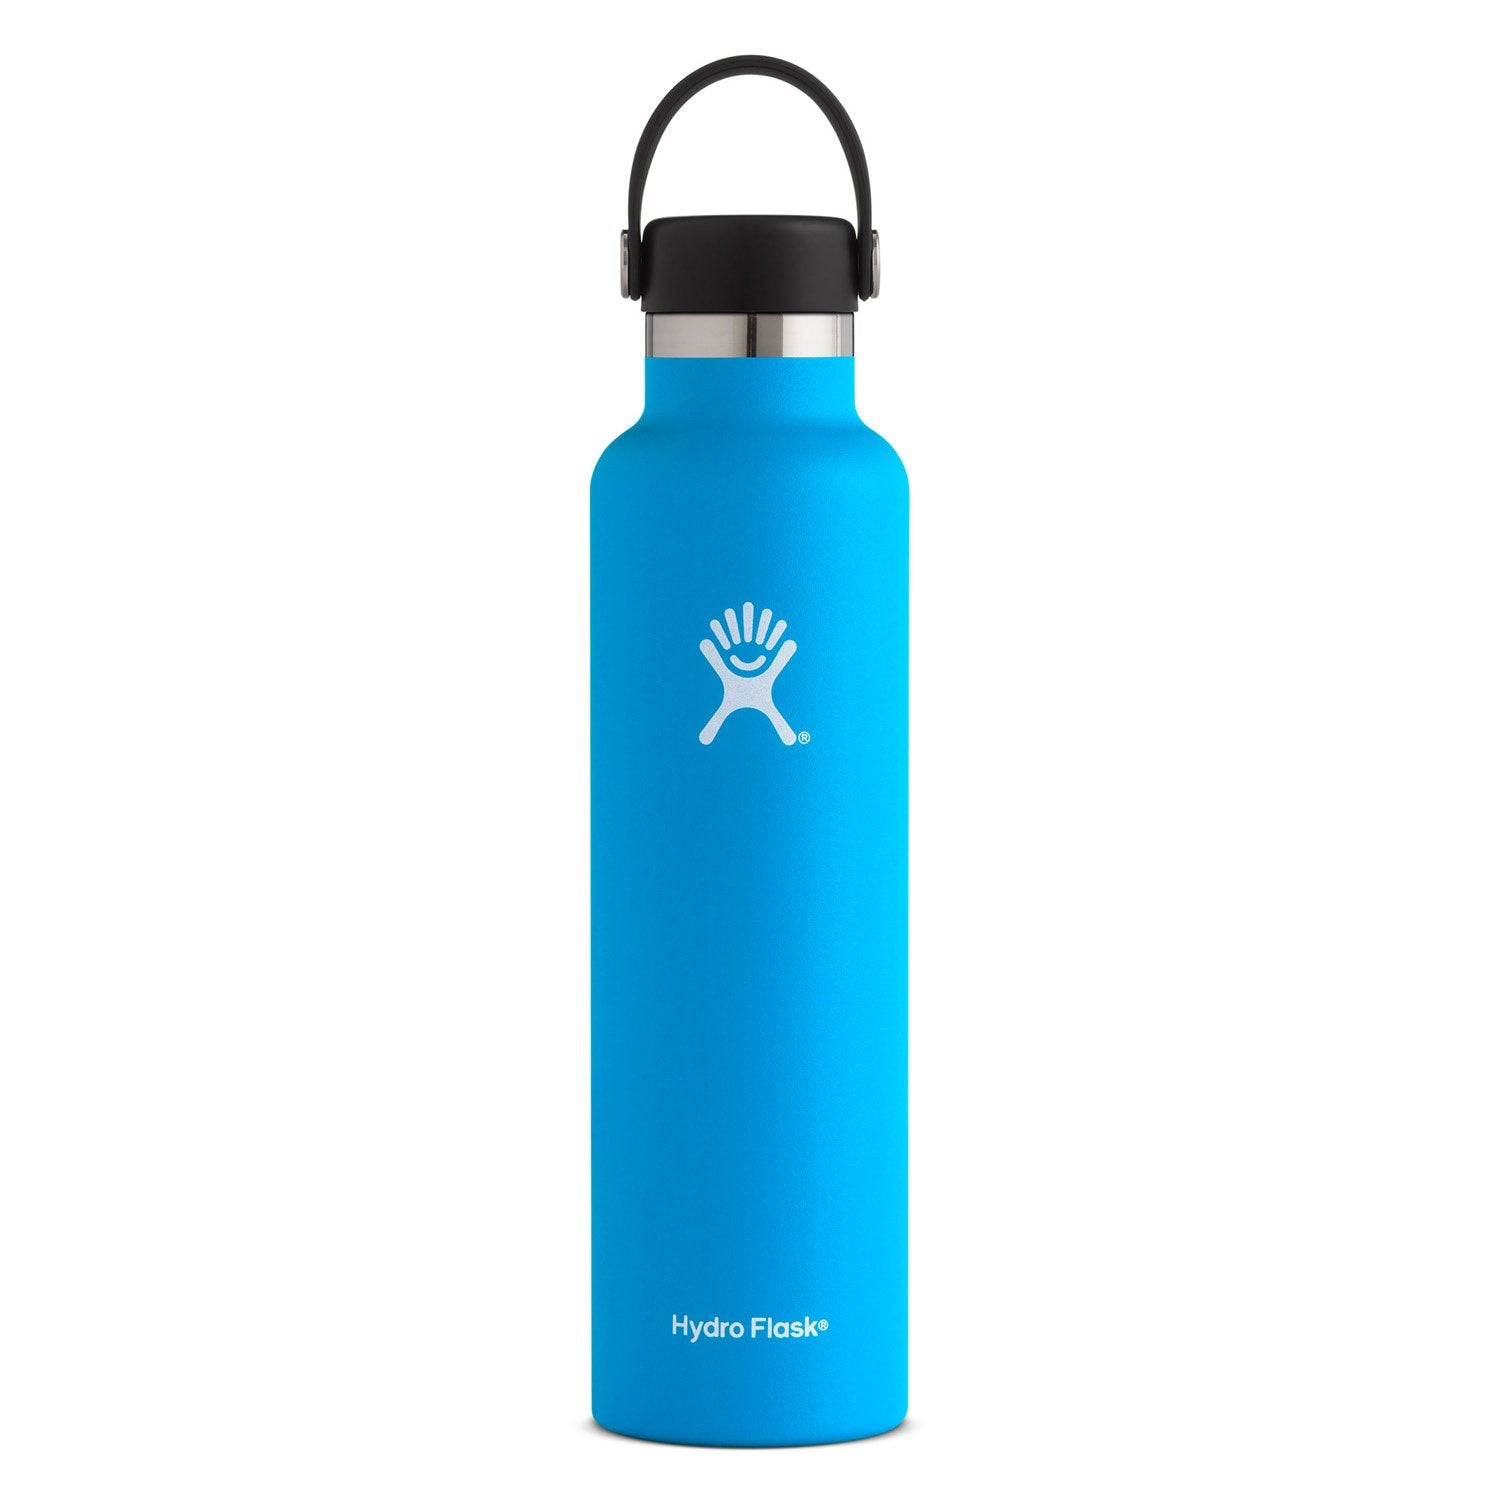 Hydro Flask - Hydro Flask - Standard Mouth Bottle 709ml - last minute gift idea - melbourne